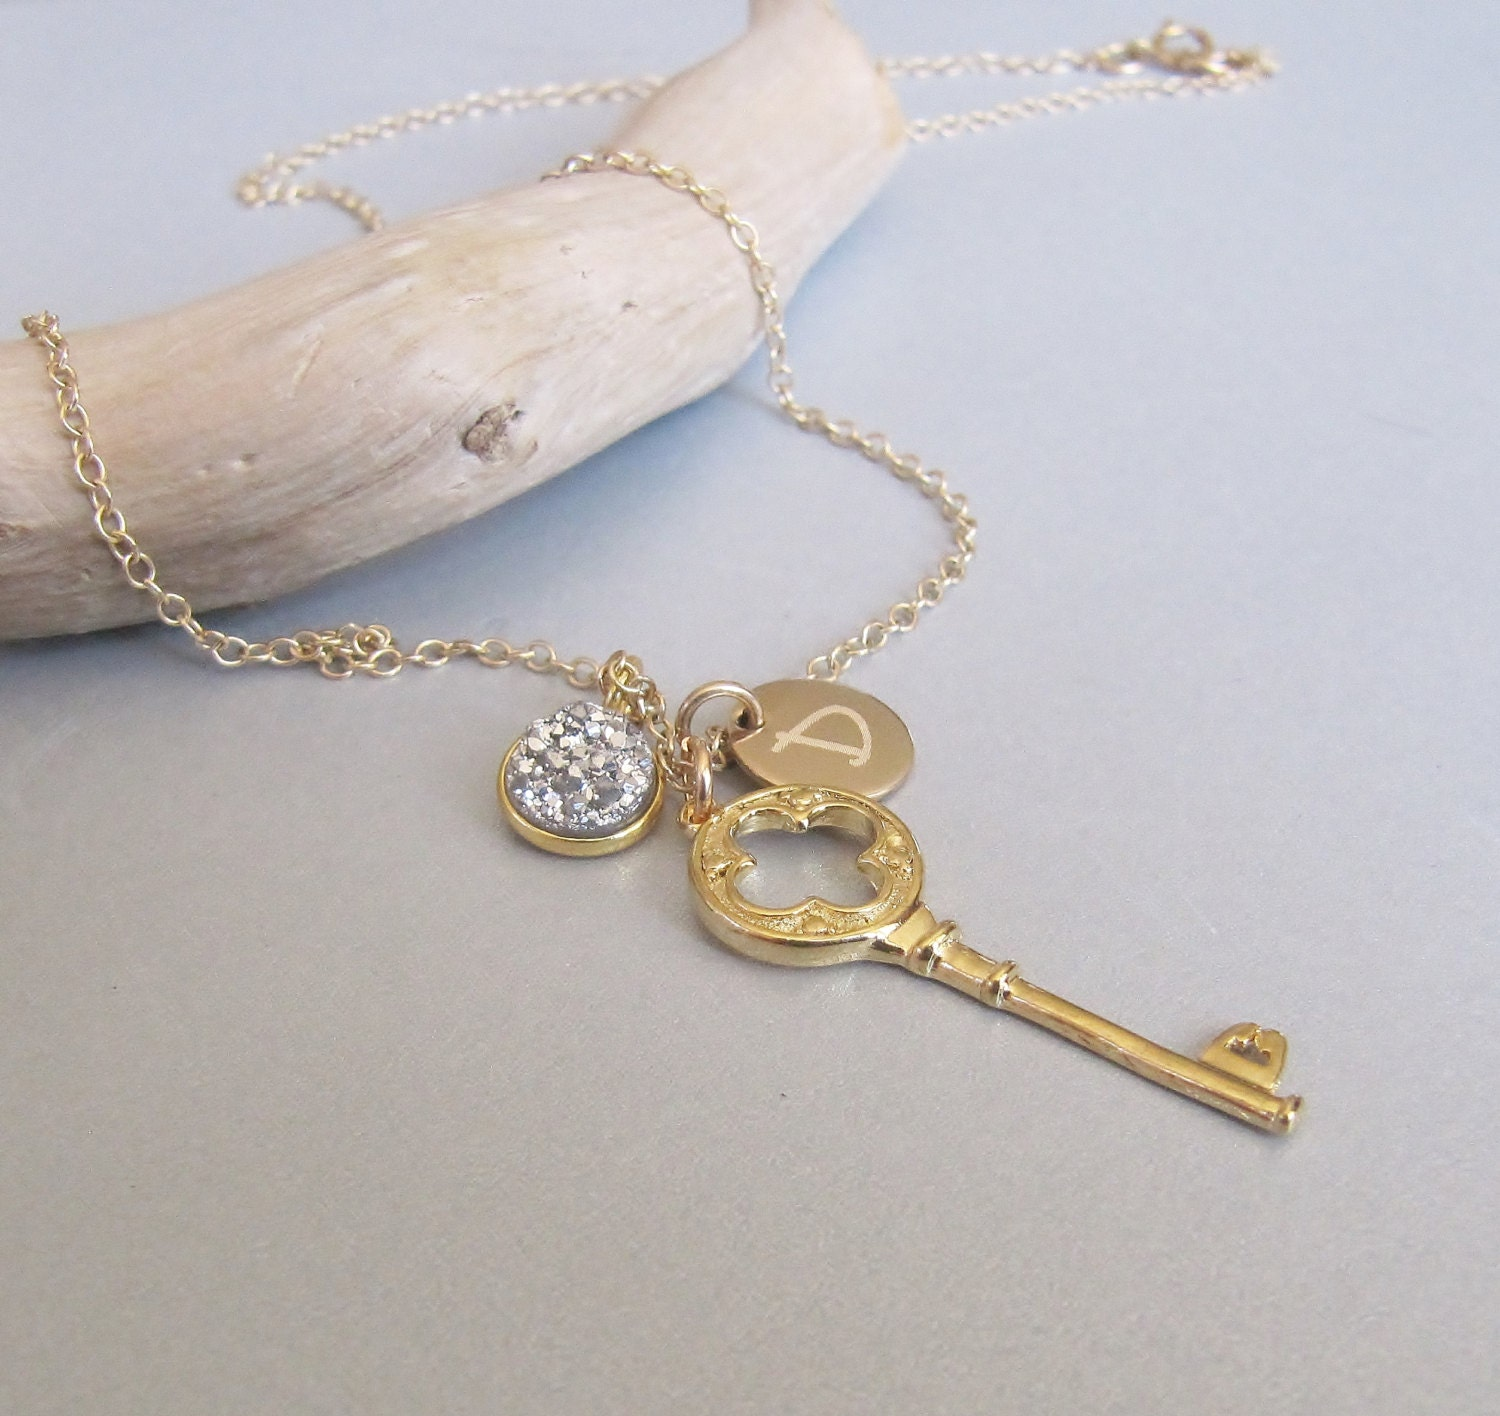 gold key and druzy personalized necklace key charm necklace. Black Bedroom Furniture Sets. Home Design Ideas